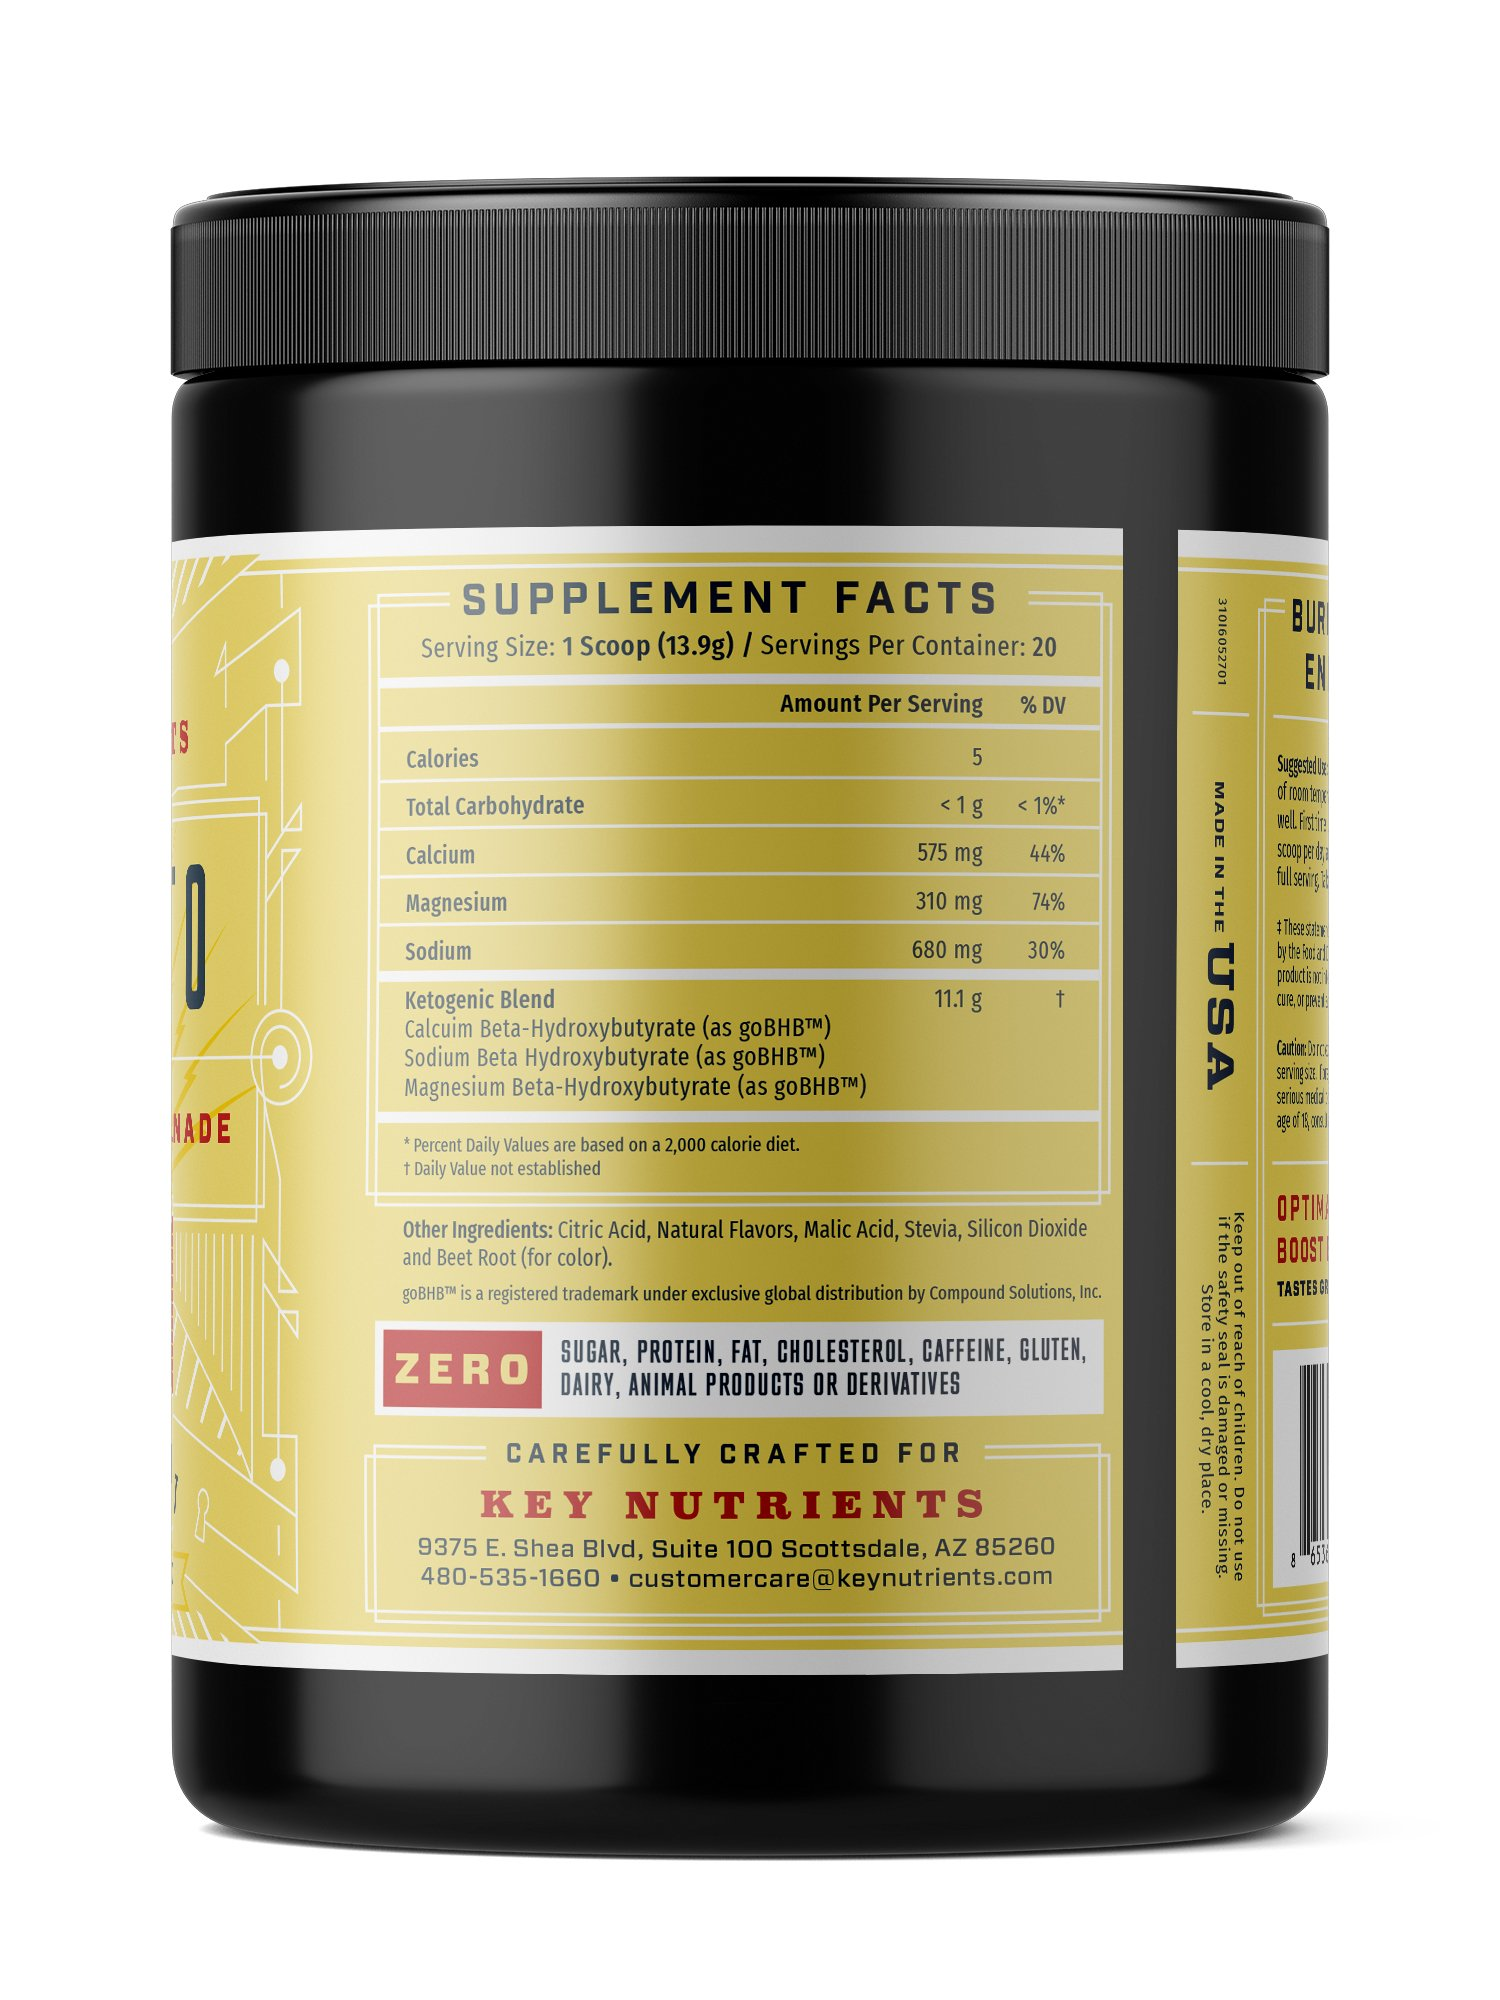 Exogenous Ketone Supplement, KEY KETO: Patented BHB Salts (Beta-Hydroxybutyrate) - Formulated for Ketosis, to Burn Fat, Increase Energy and Focus, Supports a Keto Diet. Strawberry Lemonade (278g) (20) by Key Nutrients (Image #2)